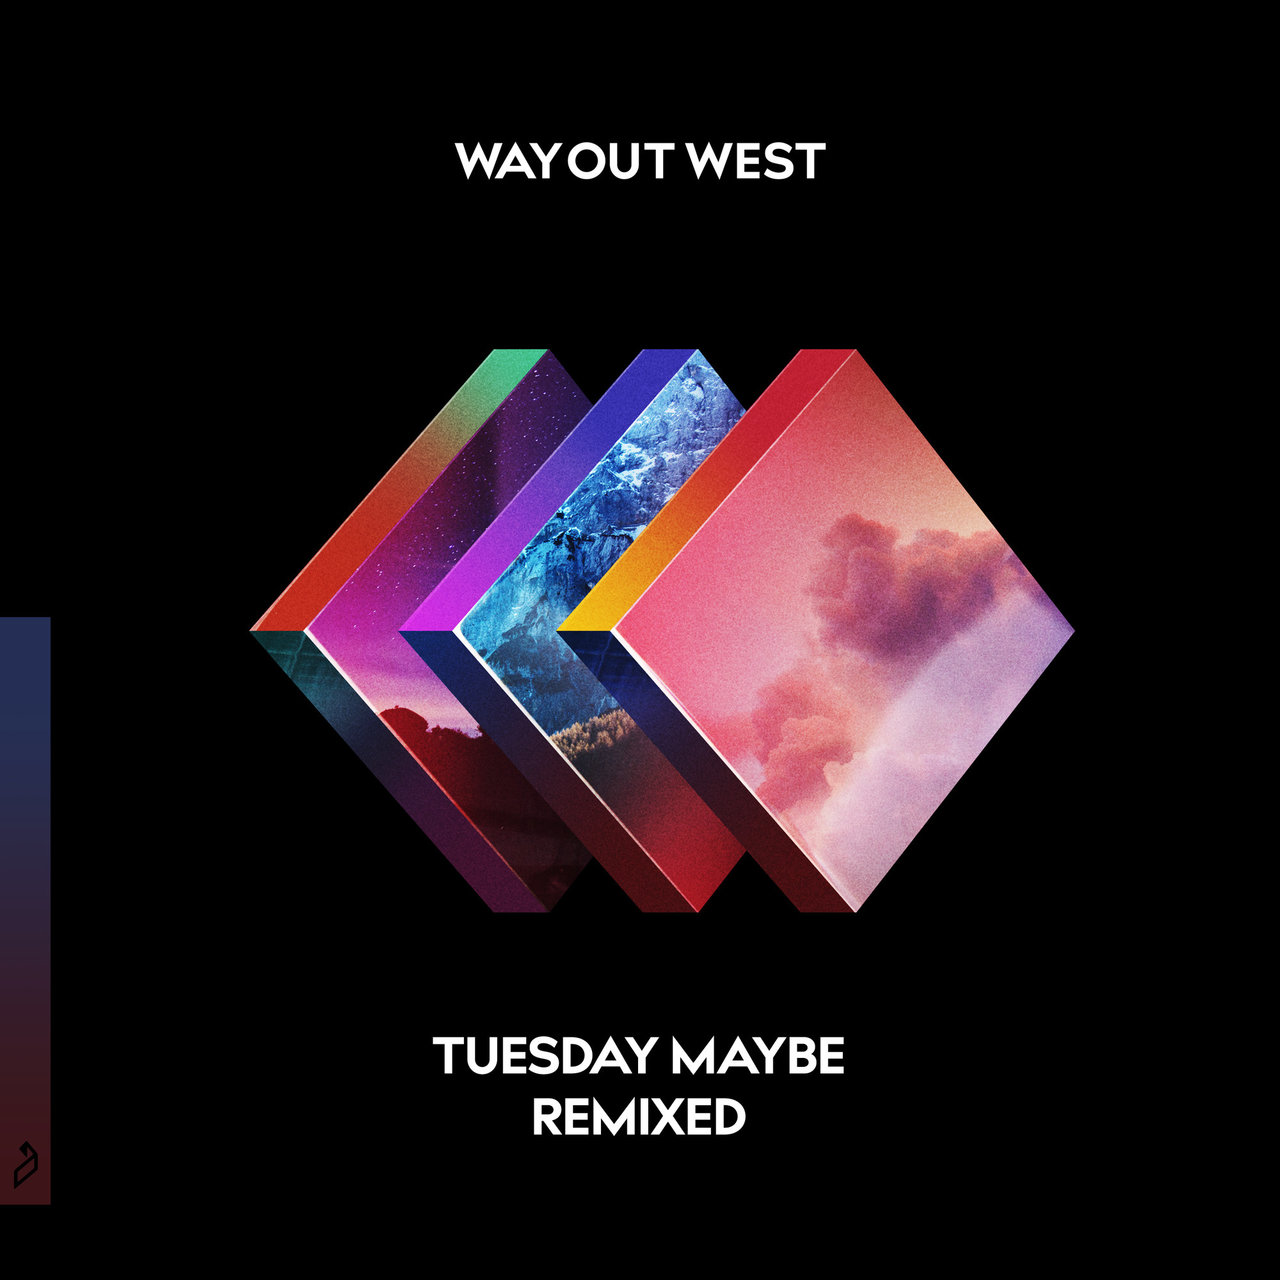 Tuesday Maybe (Remixed)